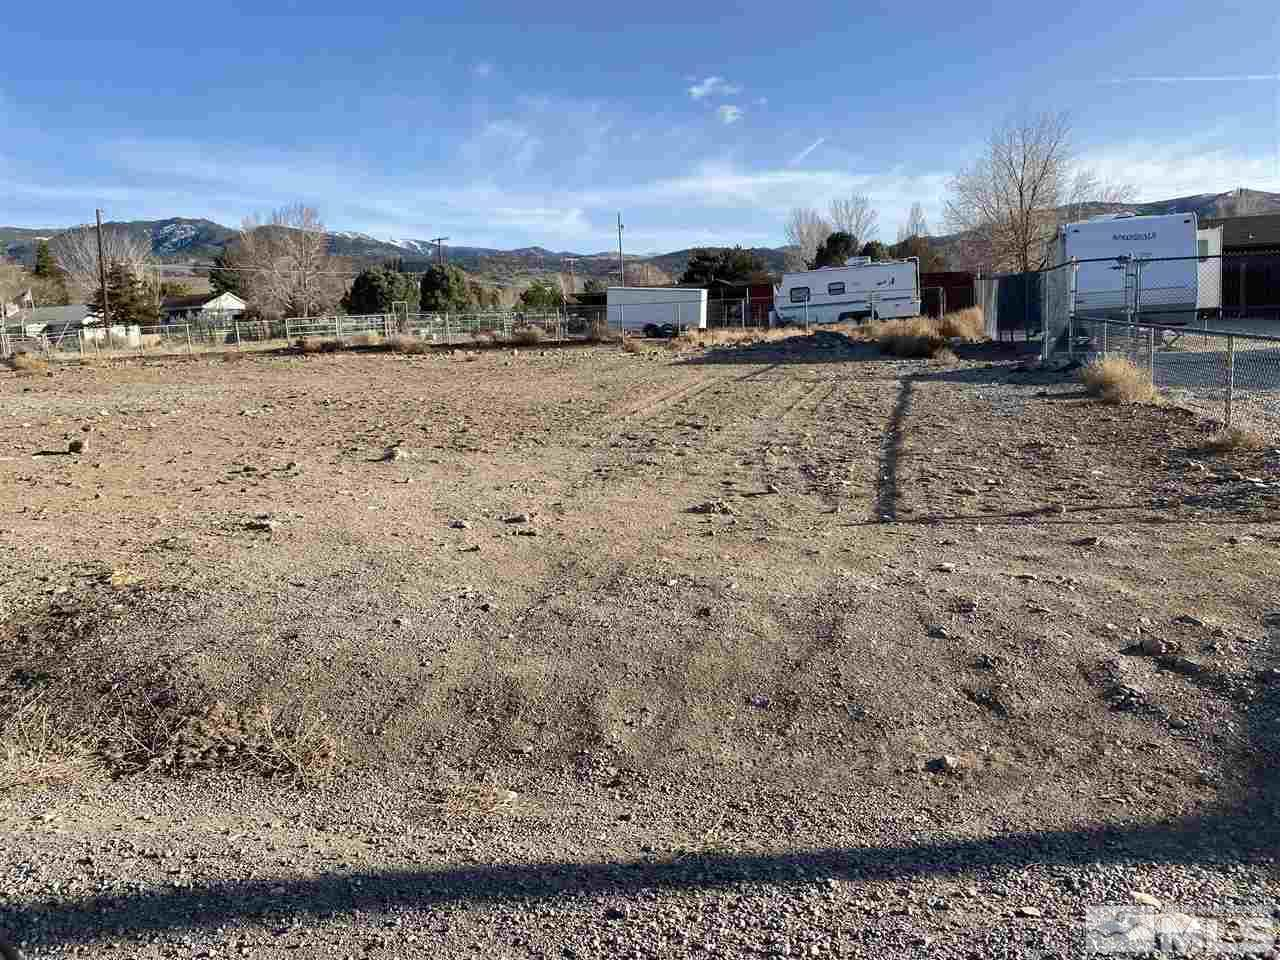 Image for 0 Hot Springs Rd, Reno, NV 89521-4439